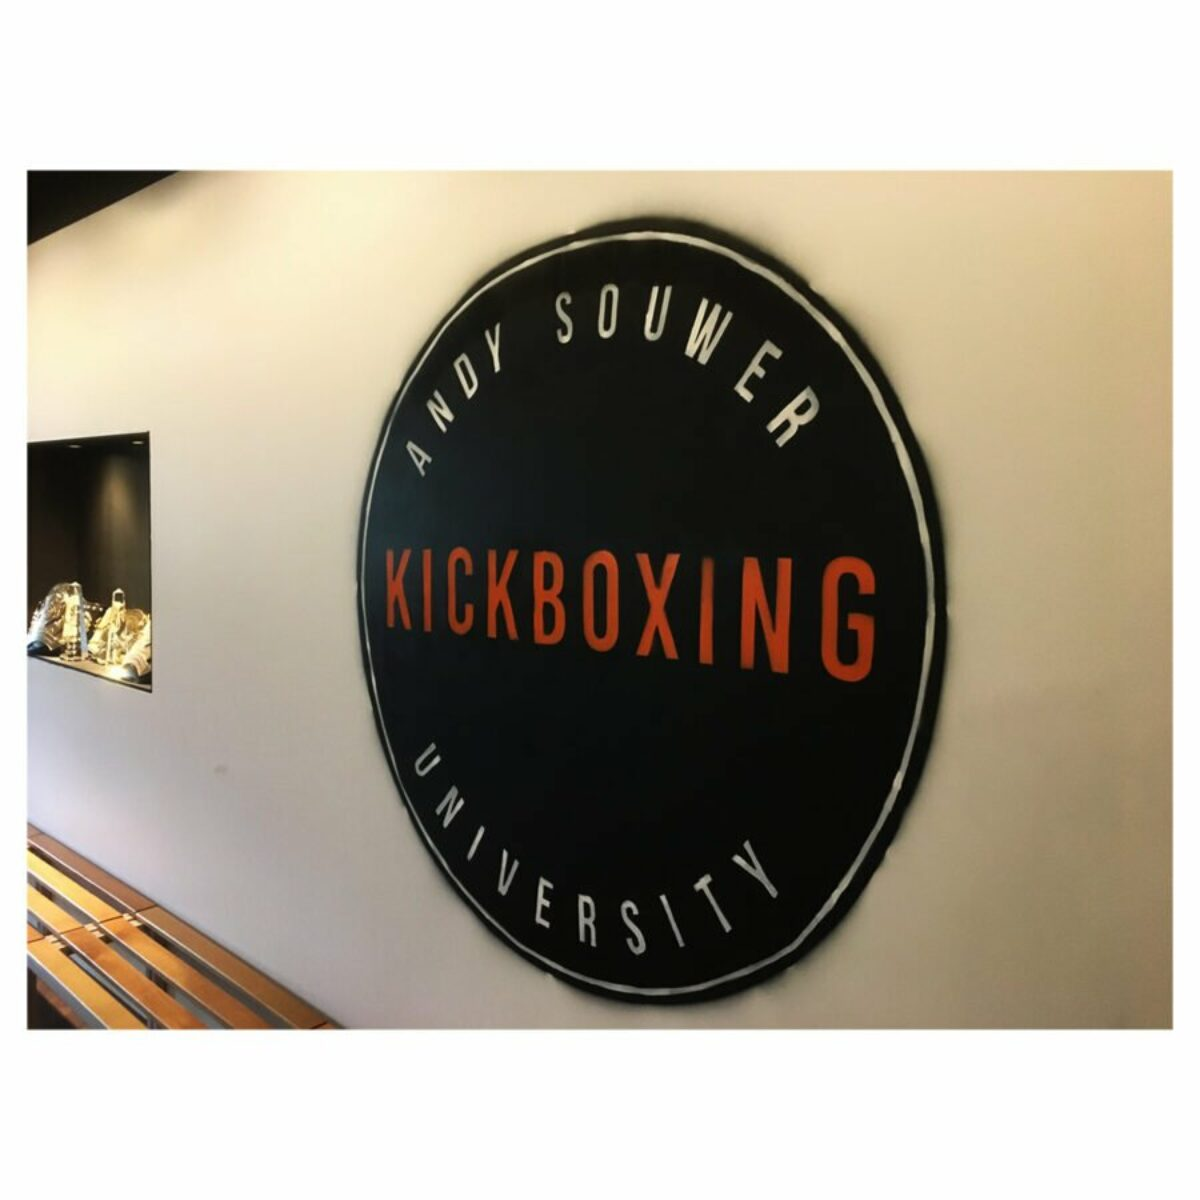 ANDY SOUWER KICKBOXING UNIVERSITY 01 - Mural - Frank Willems